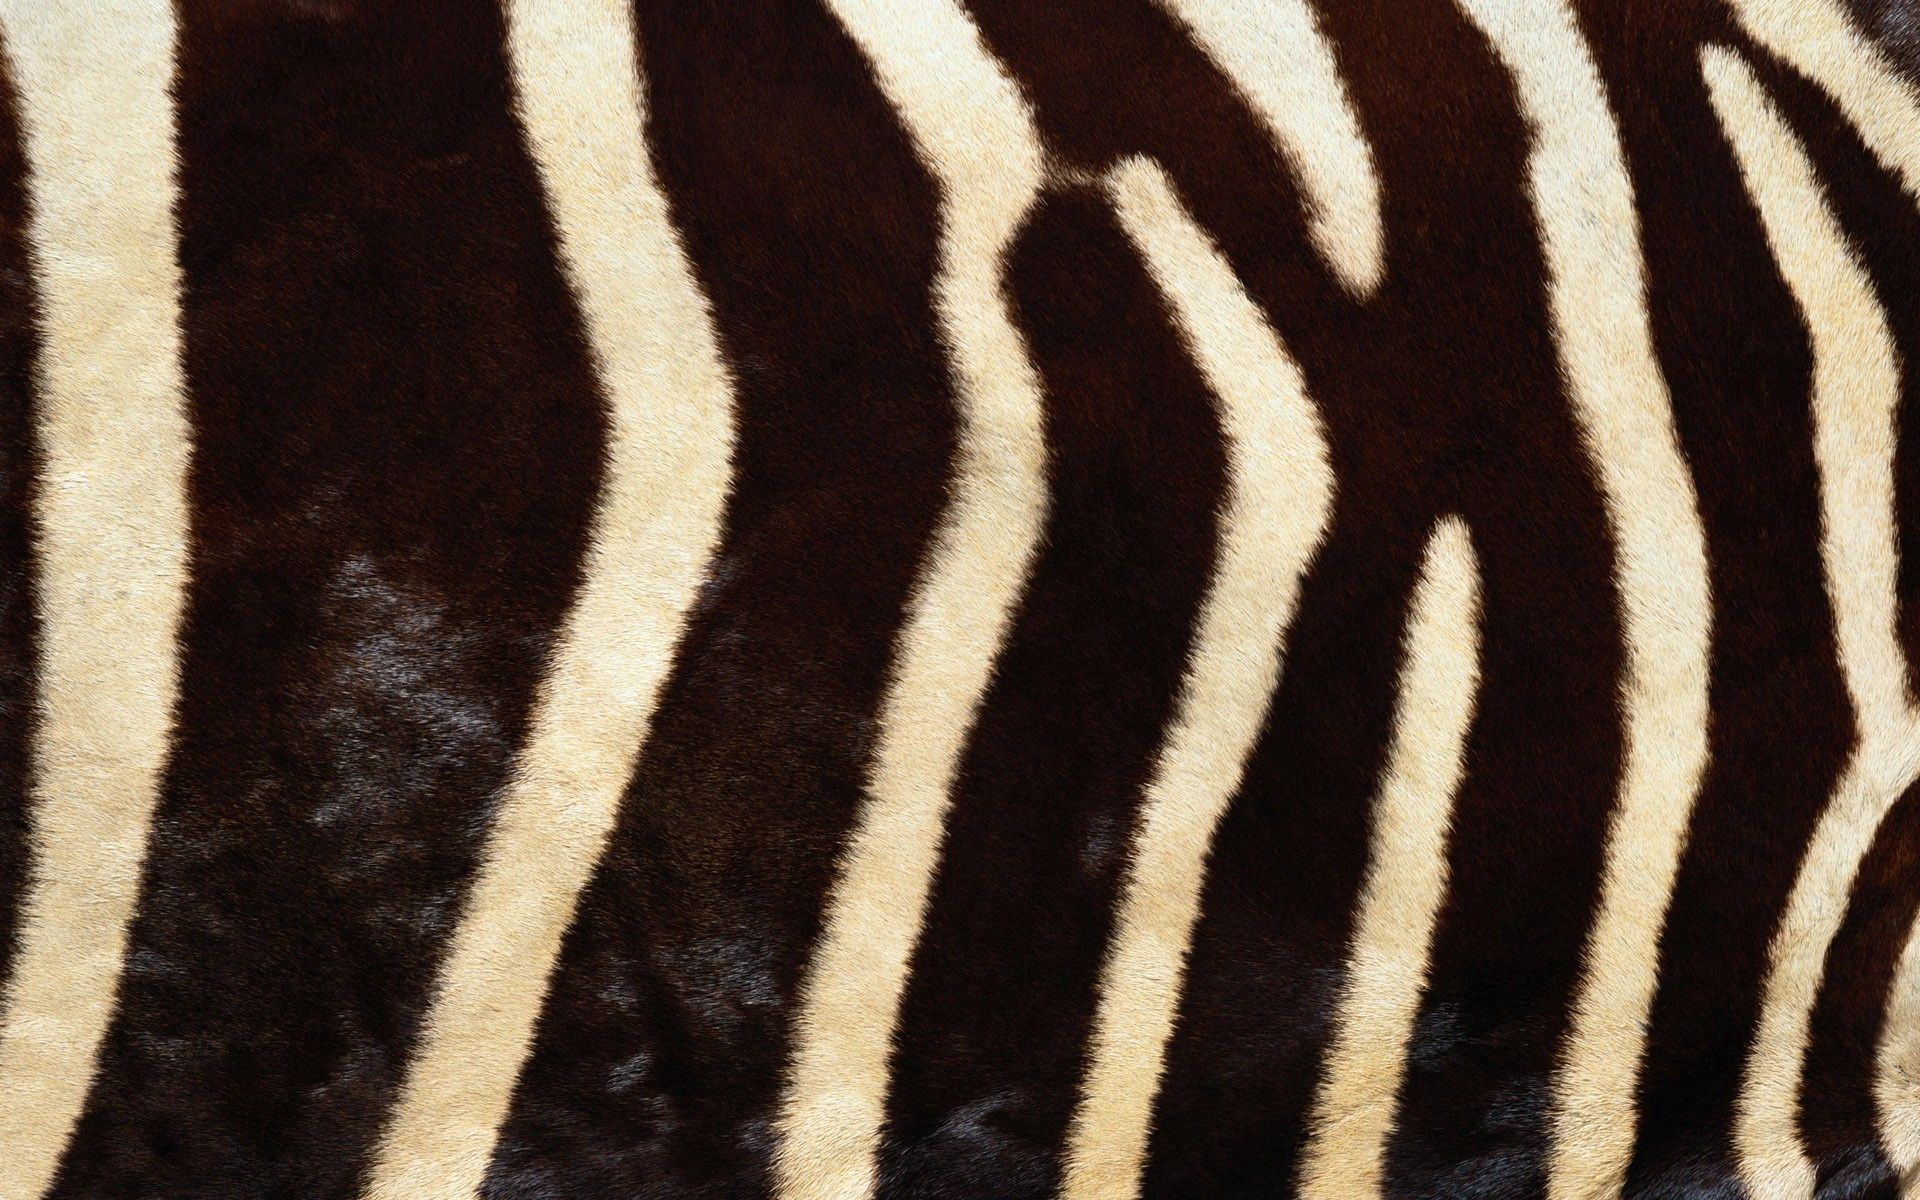 81884 download wallpaper Textures, Texture, Zebra, Fur, Stripes, Streaks, Lines screensavers and pictures for free